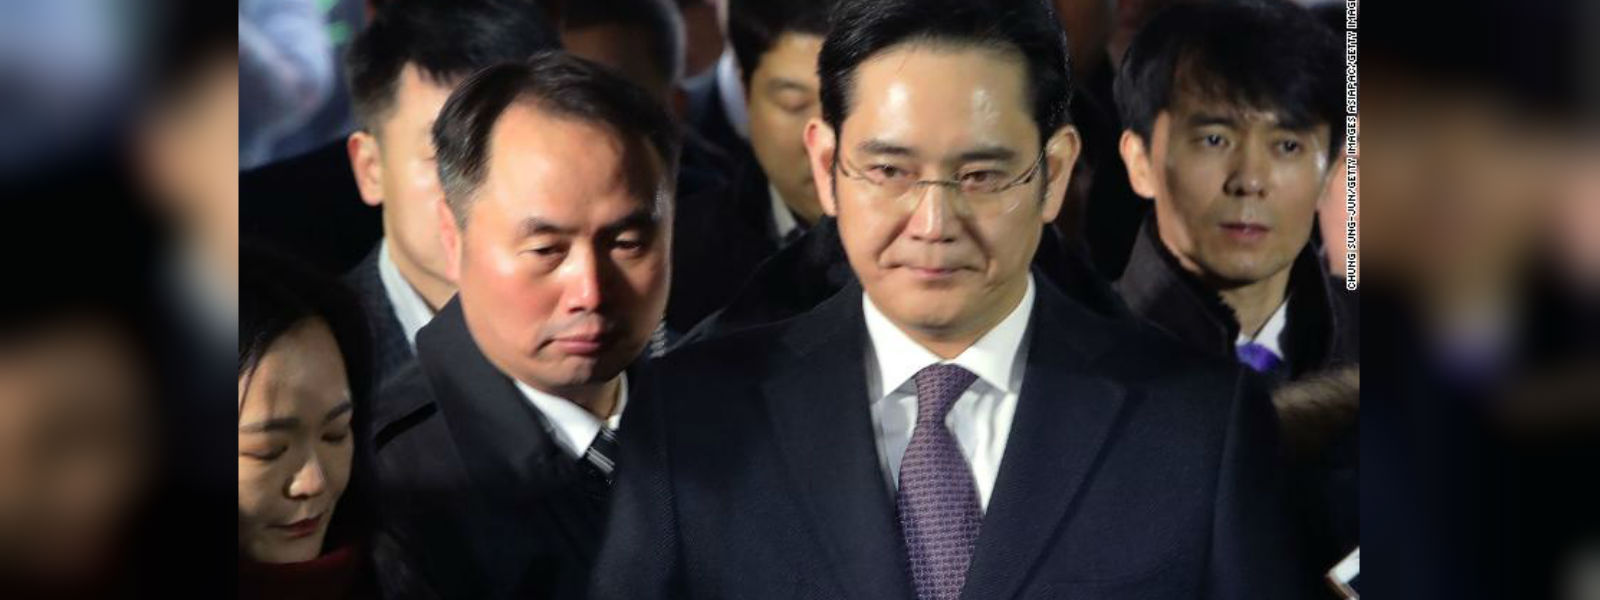 File of Samsung heir ahead of retrial in bribery scandal